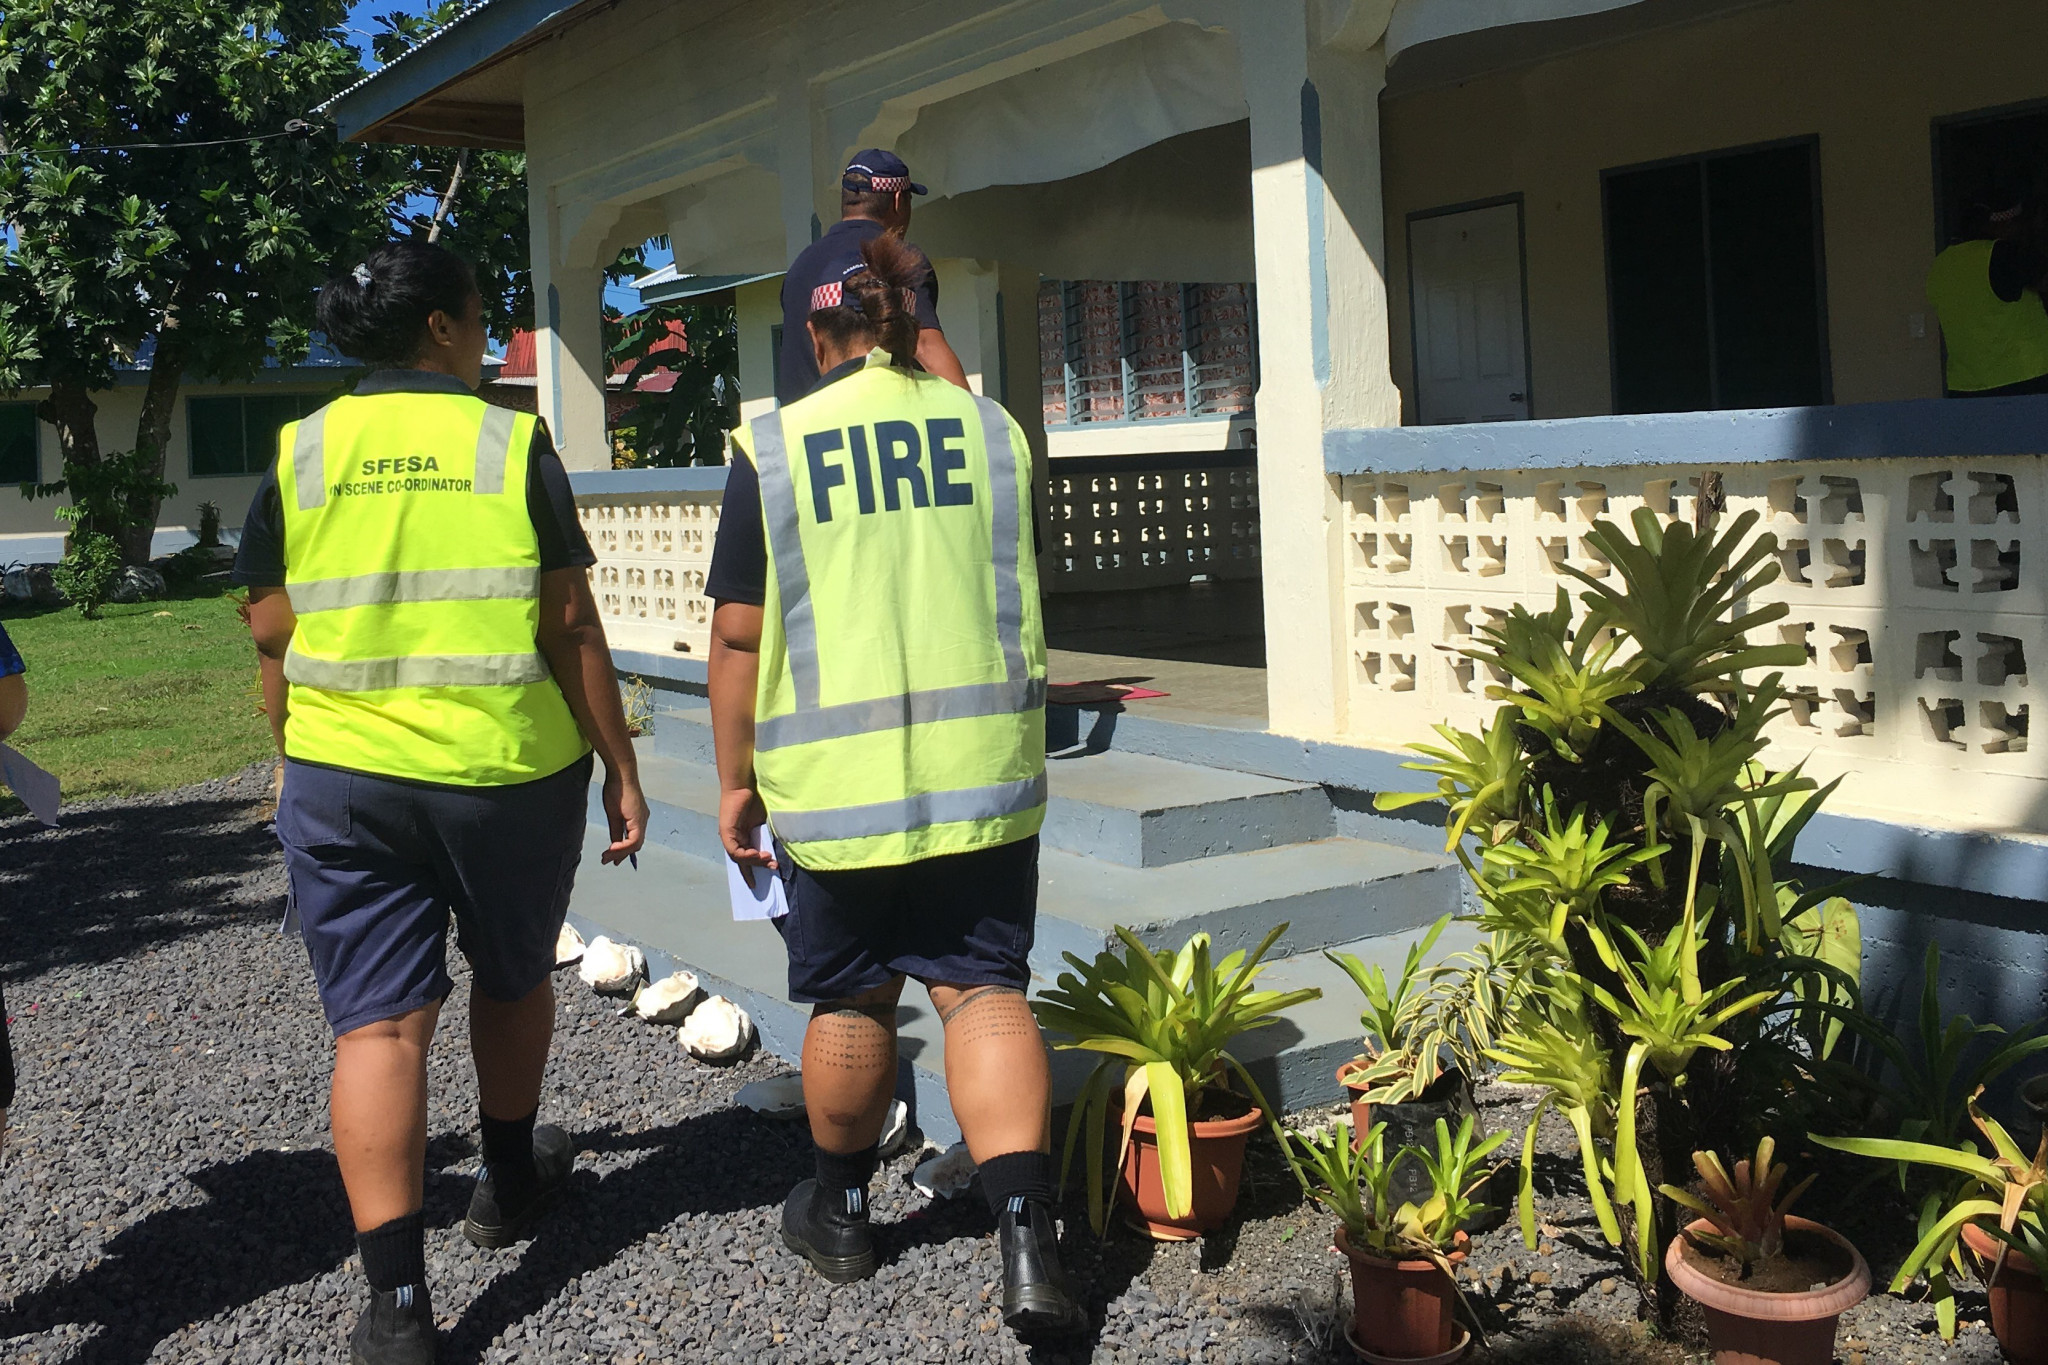 Inspections have been taking place to ensure safety ©Samoa 2019